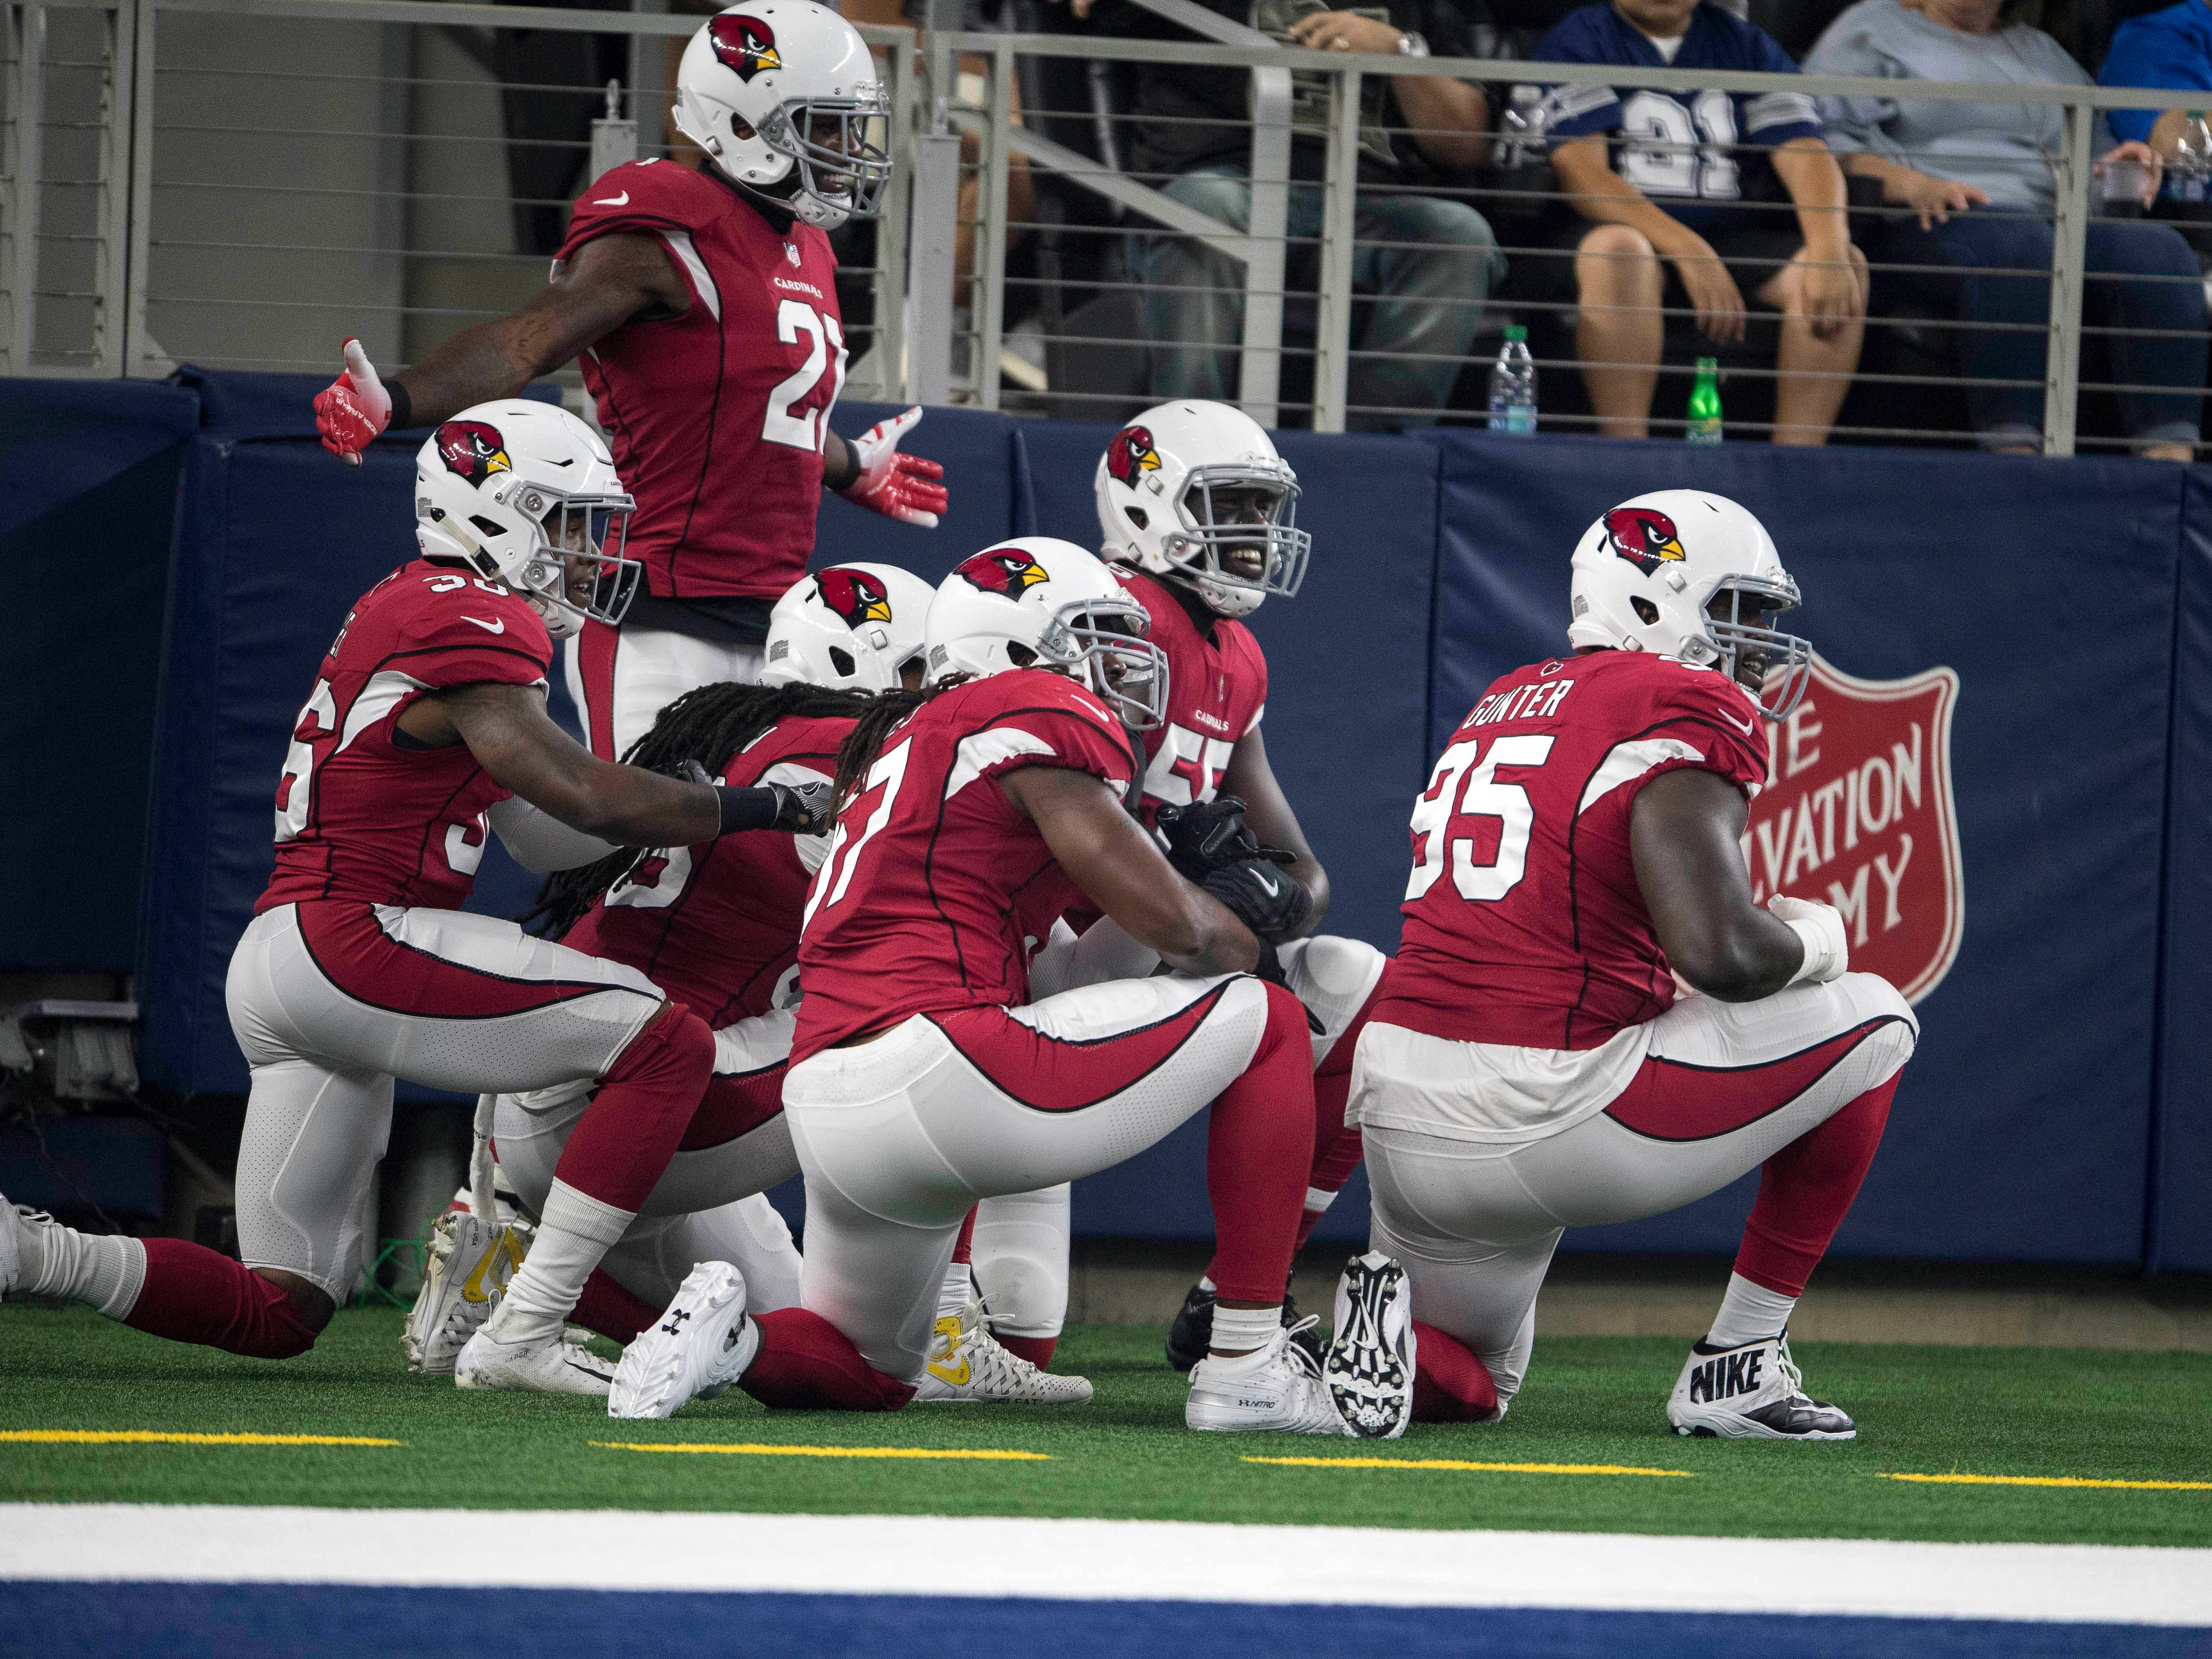 Aug 26, 2018; Arlington, TX, USA; Arizona Cardinals defensive back Patrick Peterson (21) and defensive tackle Rodney Gunter (95) and linebacker Josh Bynes (57) and defensive end Chandler Jones (55) celebrate a touchdown by Peterson against the Dallas Cowboys during the first quarter at AT&T Stadium. Mandatory Credit: Jerome Miron-USA TODAY Sports